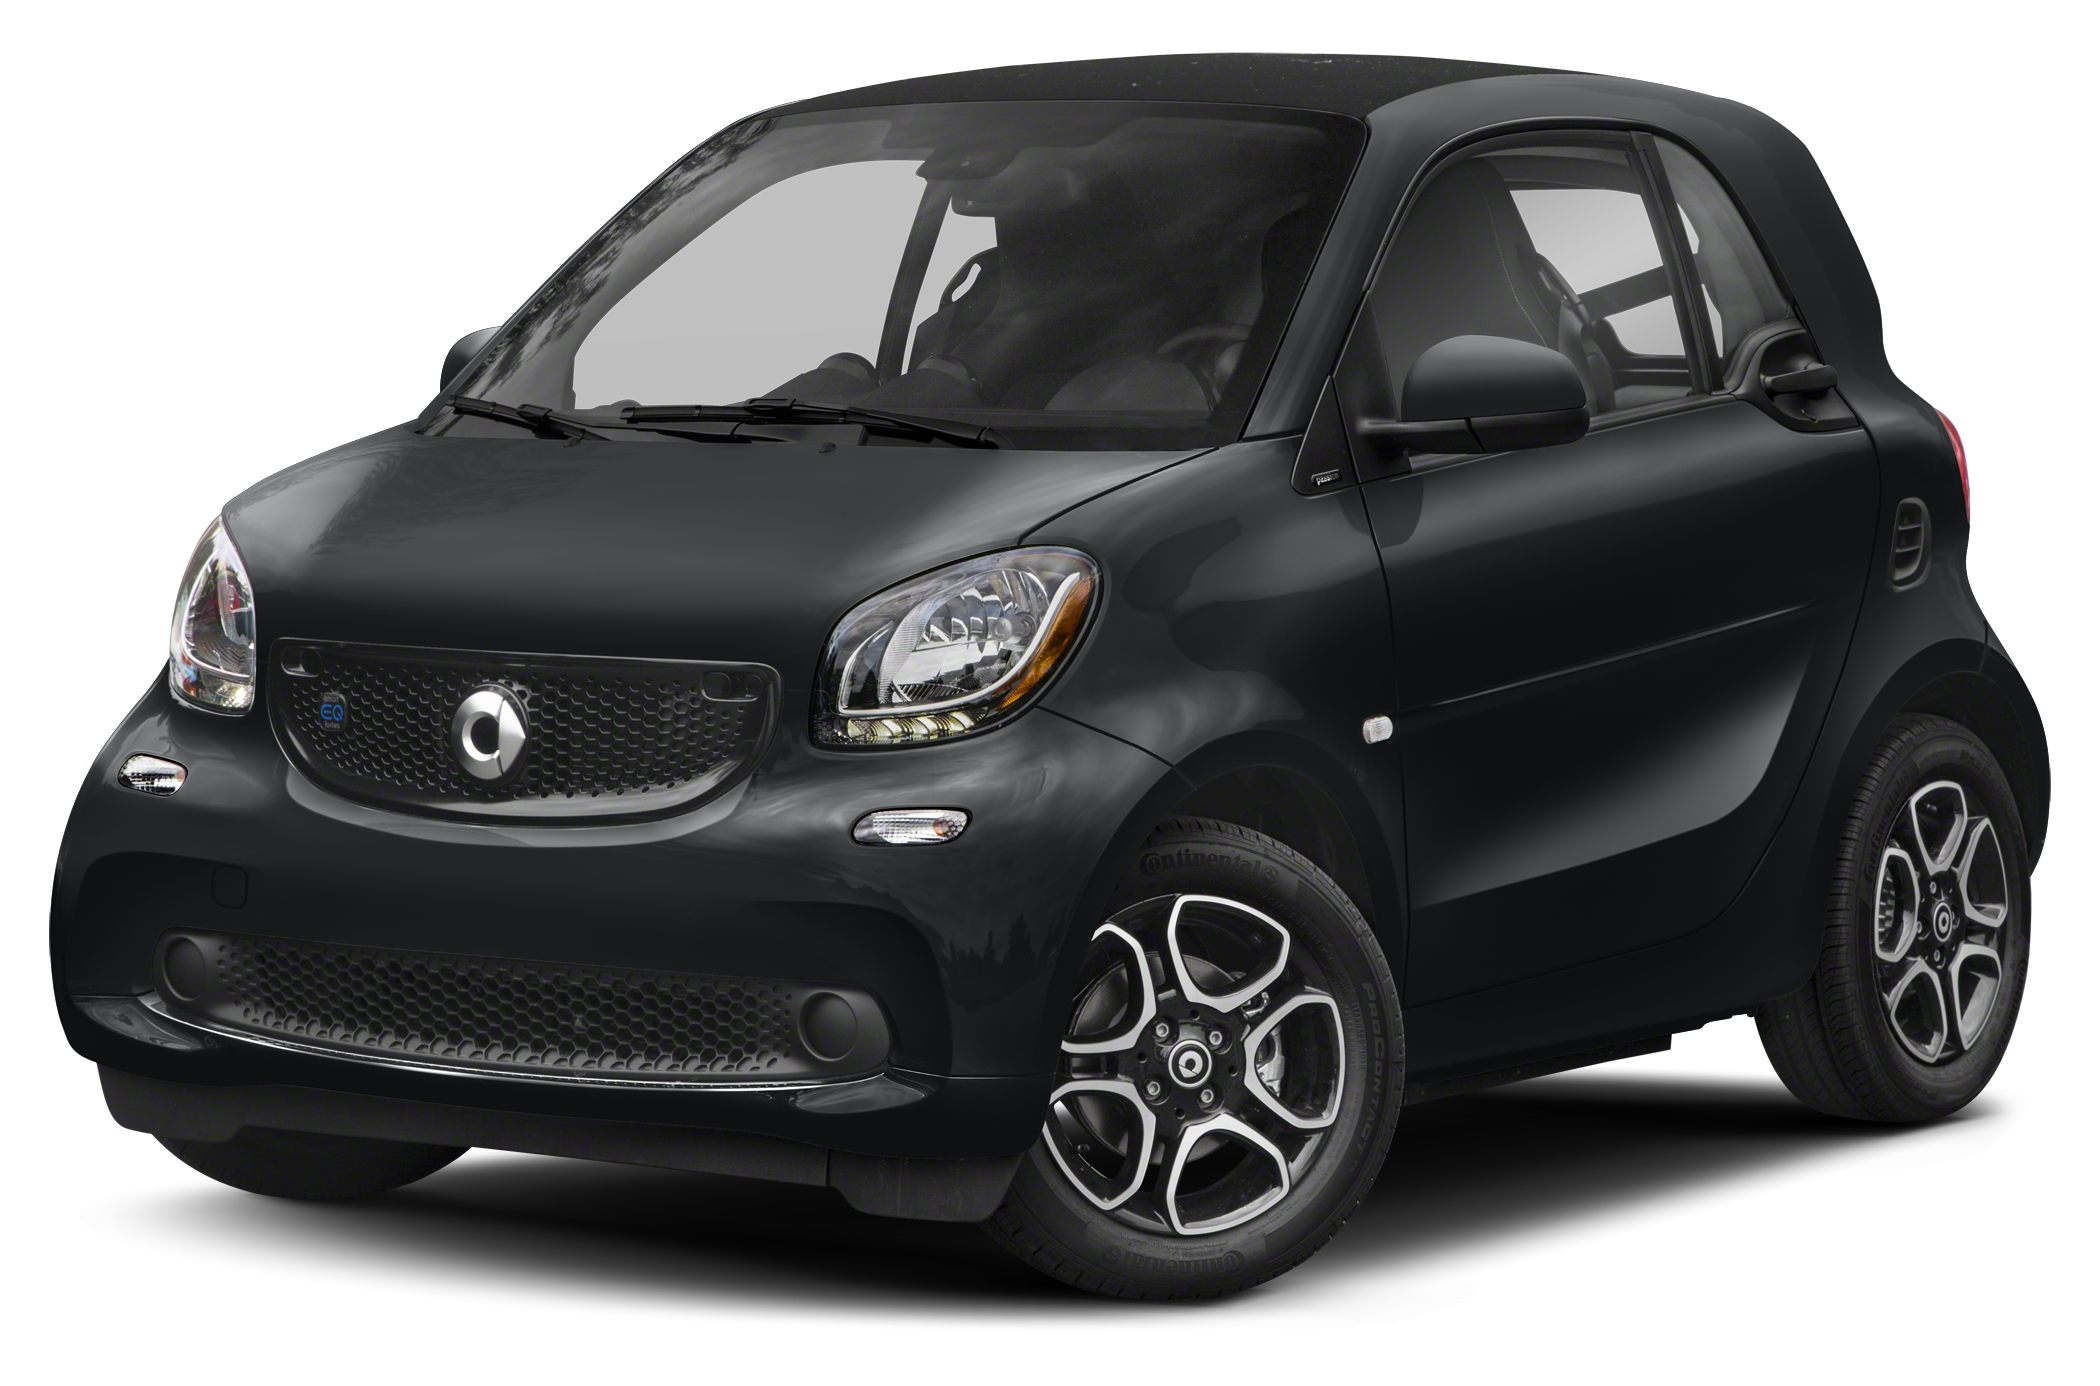 Pure 2dr Coupe 2018 Smart Fortwo Electric Drive Photos